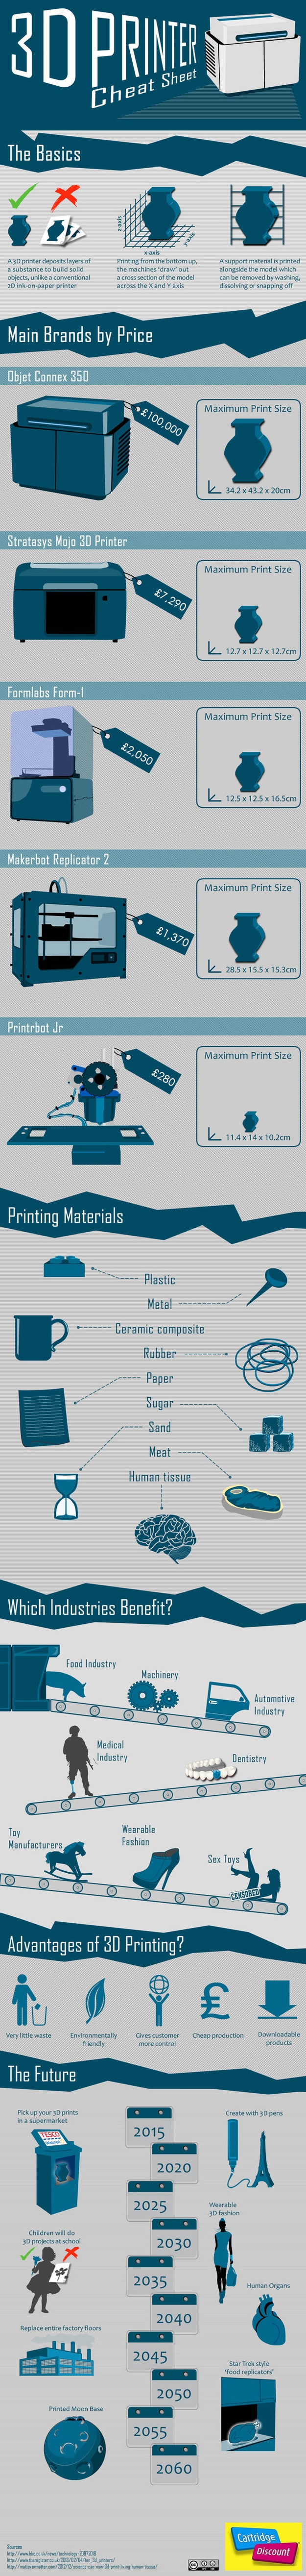 3d-printing-potential-applications-infographic